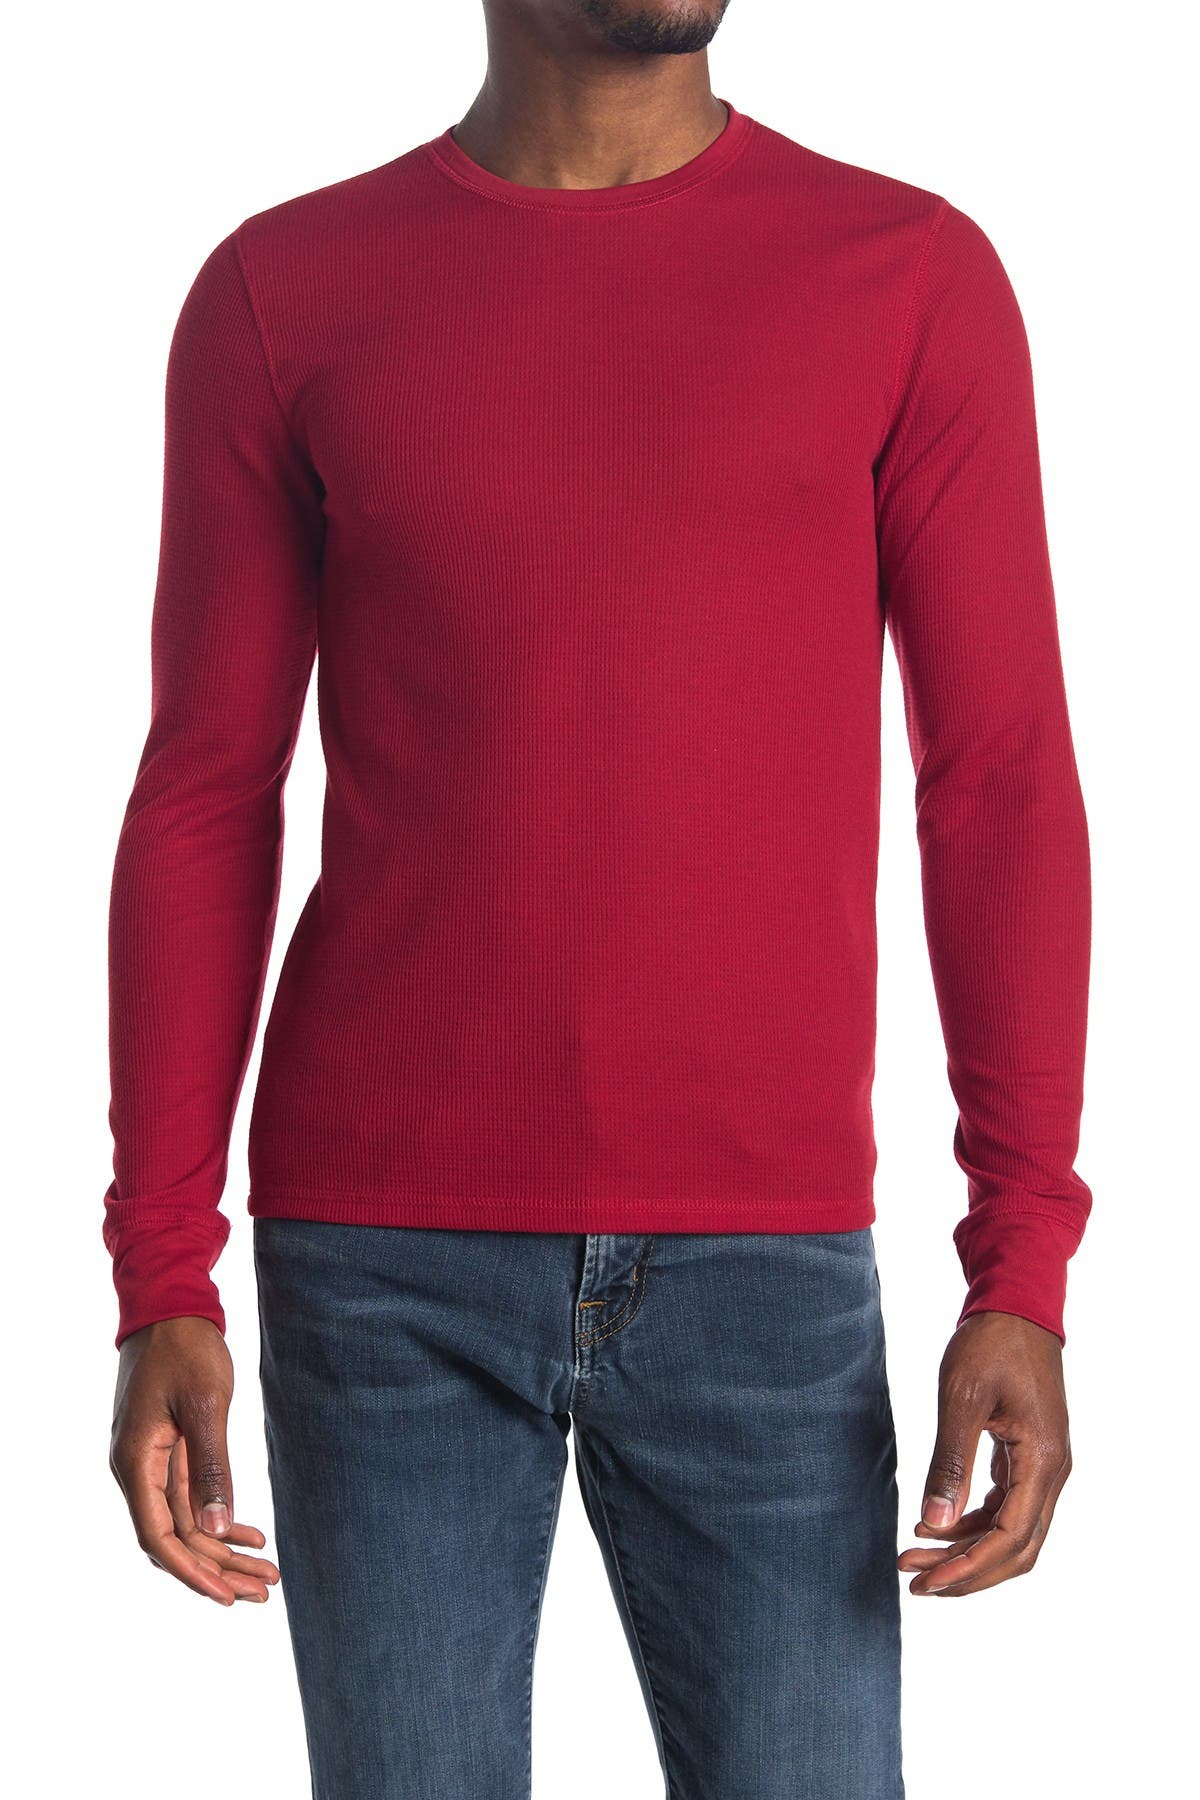 Avalanche Mens Thermal Compression Baselayer Crew Neck Long Sleeve Shirt Core Warmth